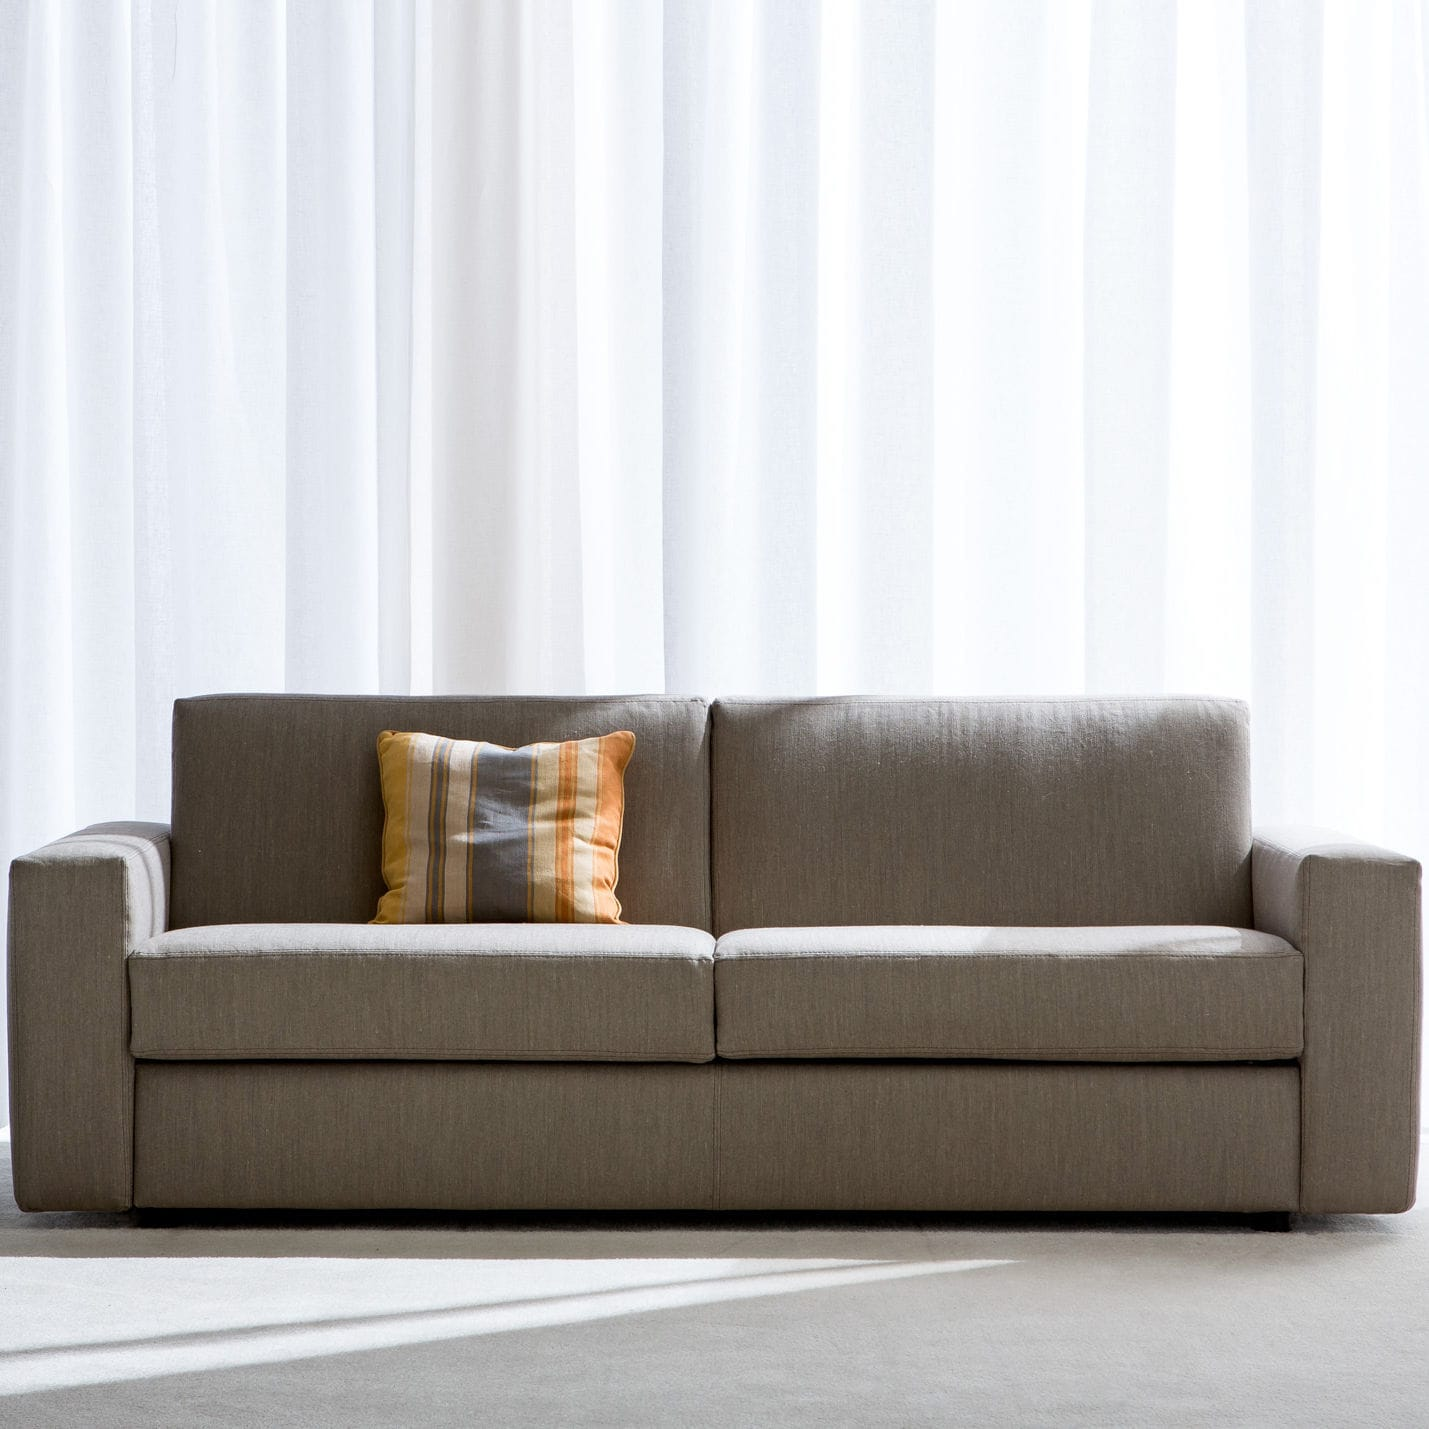 Sofa bed contemporary fabric leather SAN DIEGO CITY